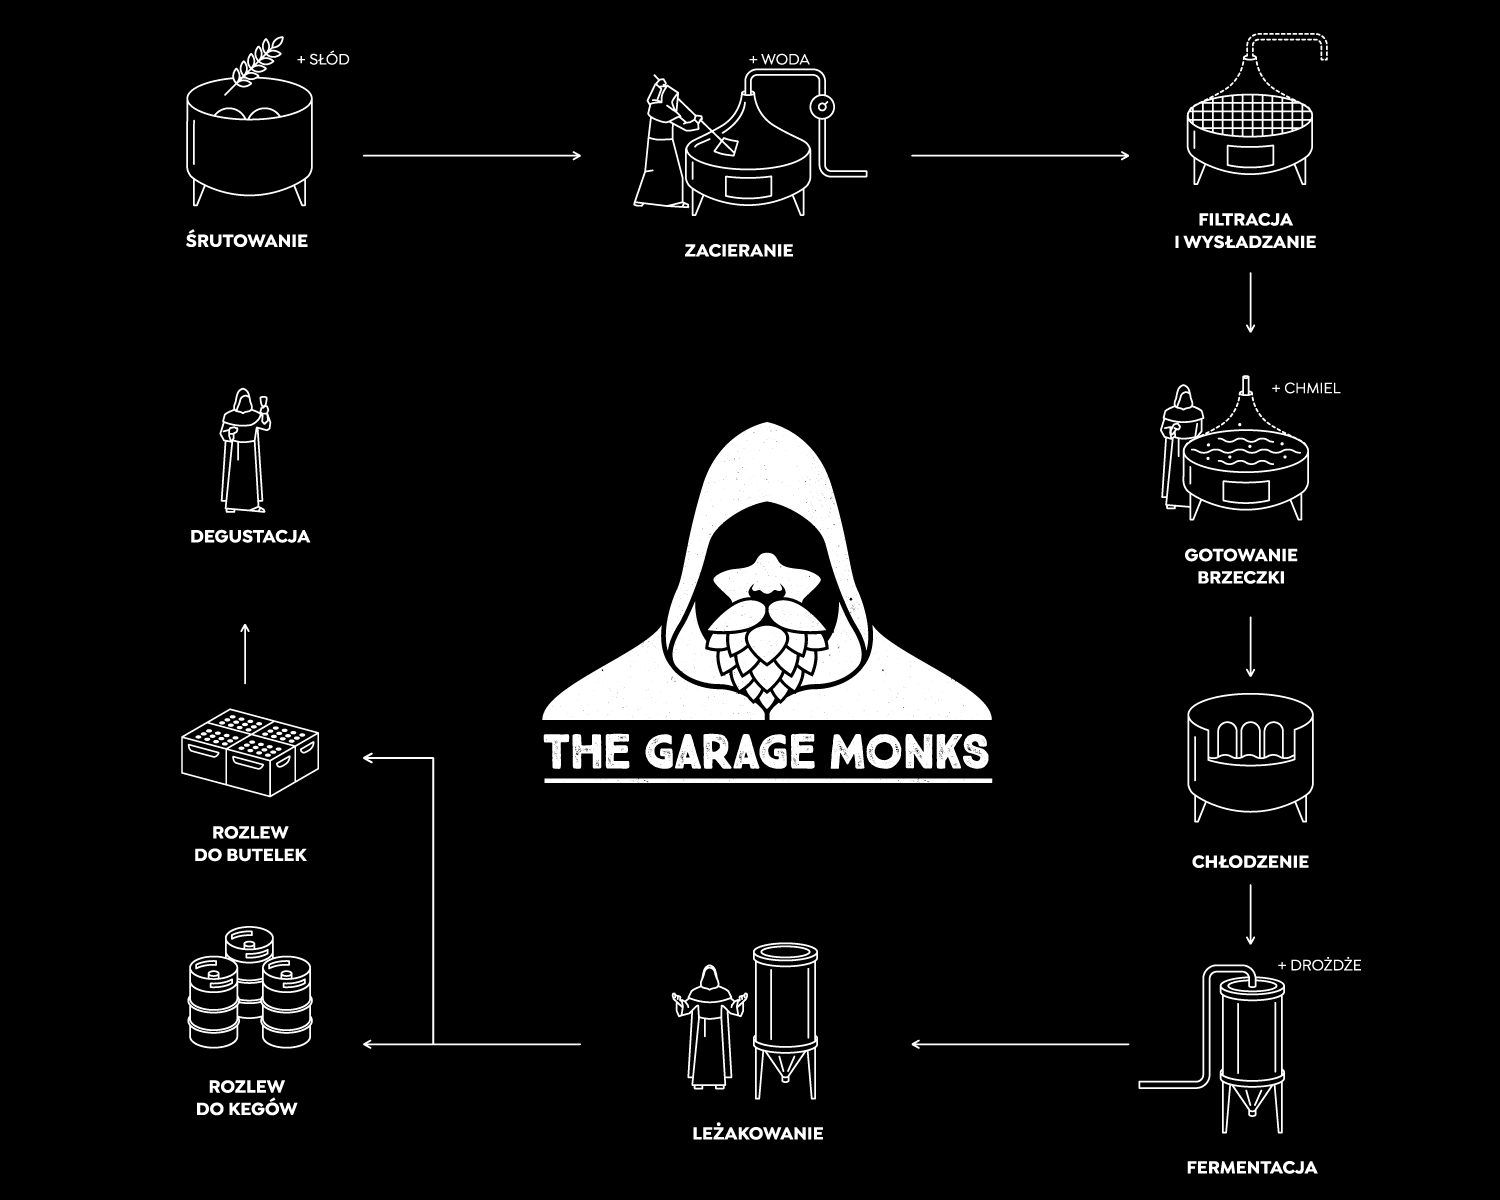 The Garage Monks booth wall design showing beer brewing process by Jakub Cichecki